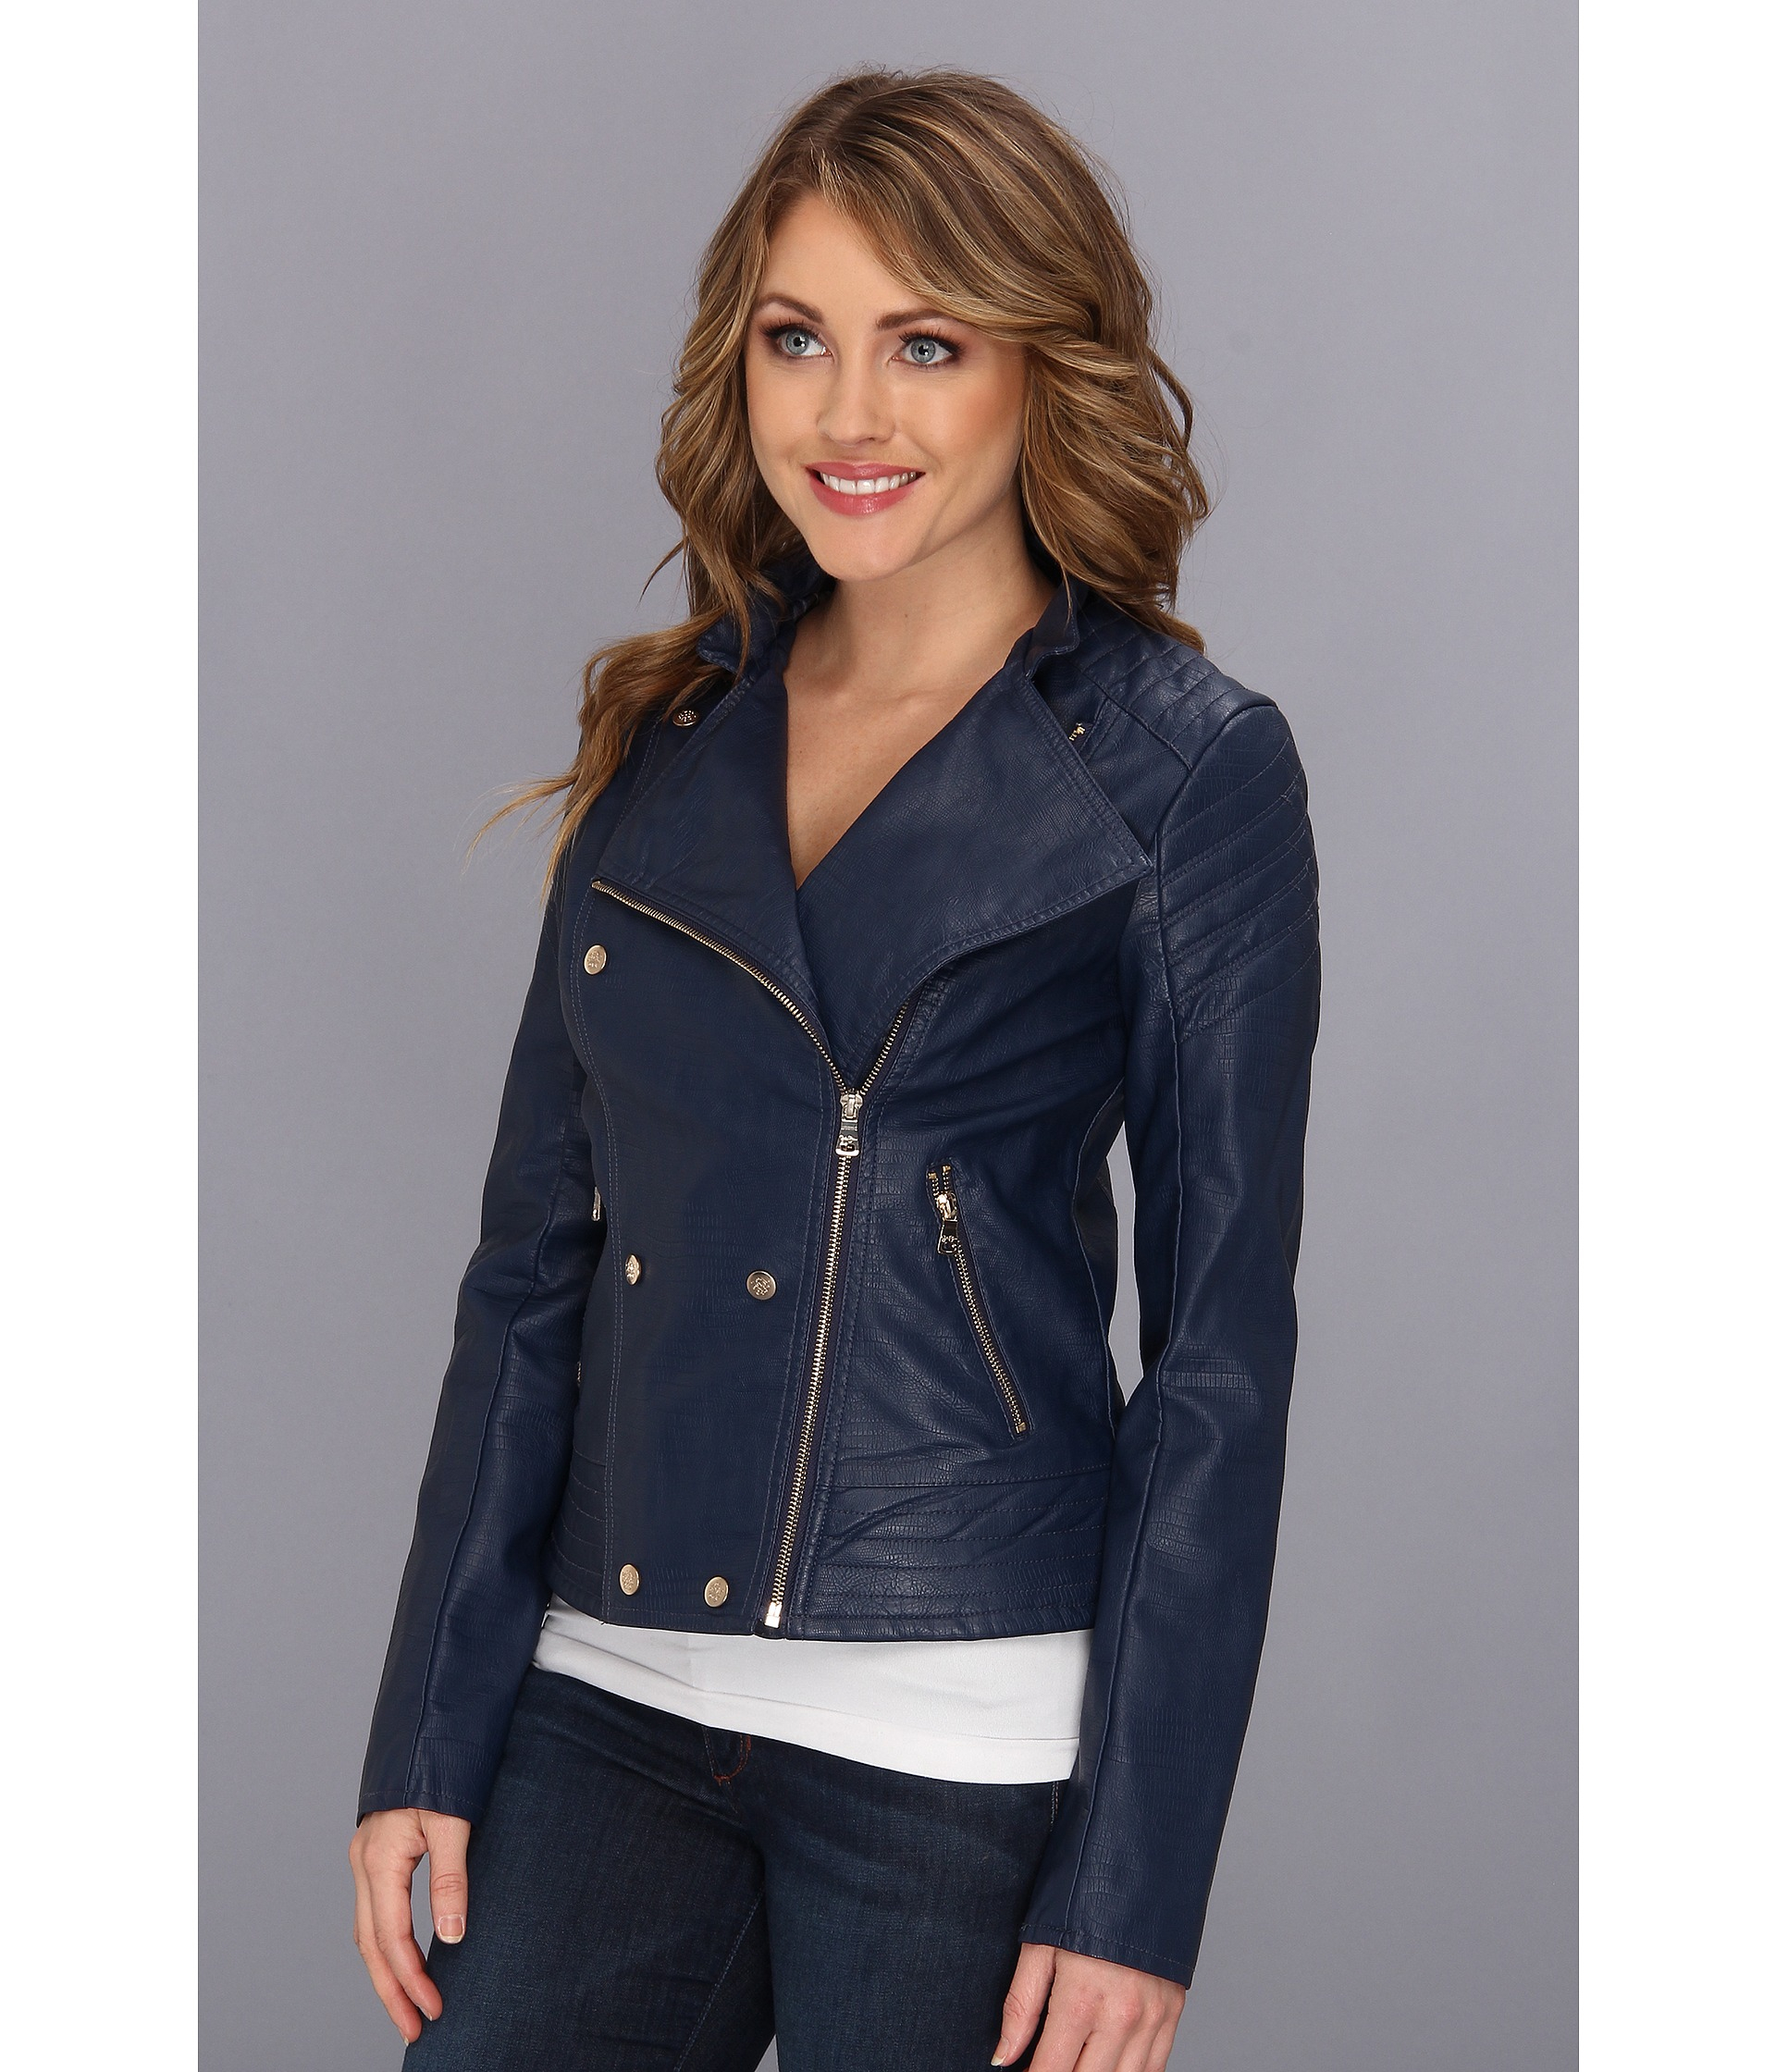 pinterest colin quilted guess jacket quilt faux leather pin